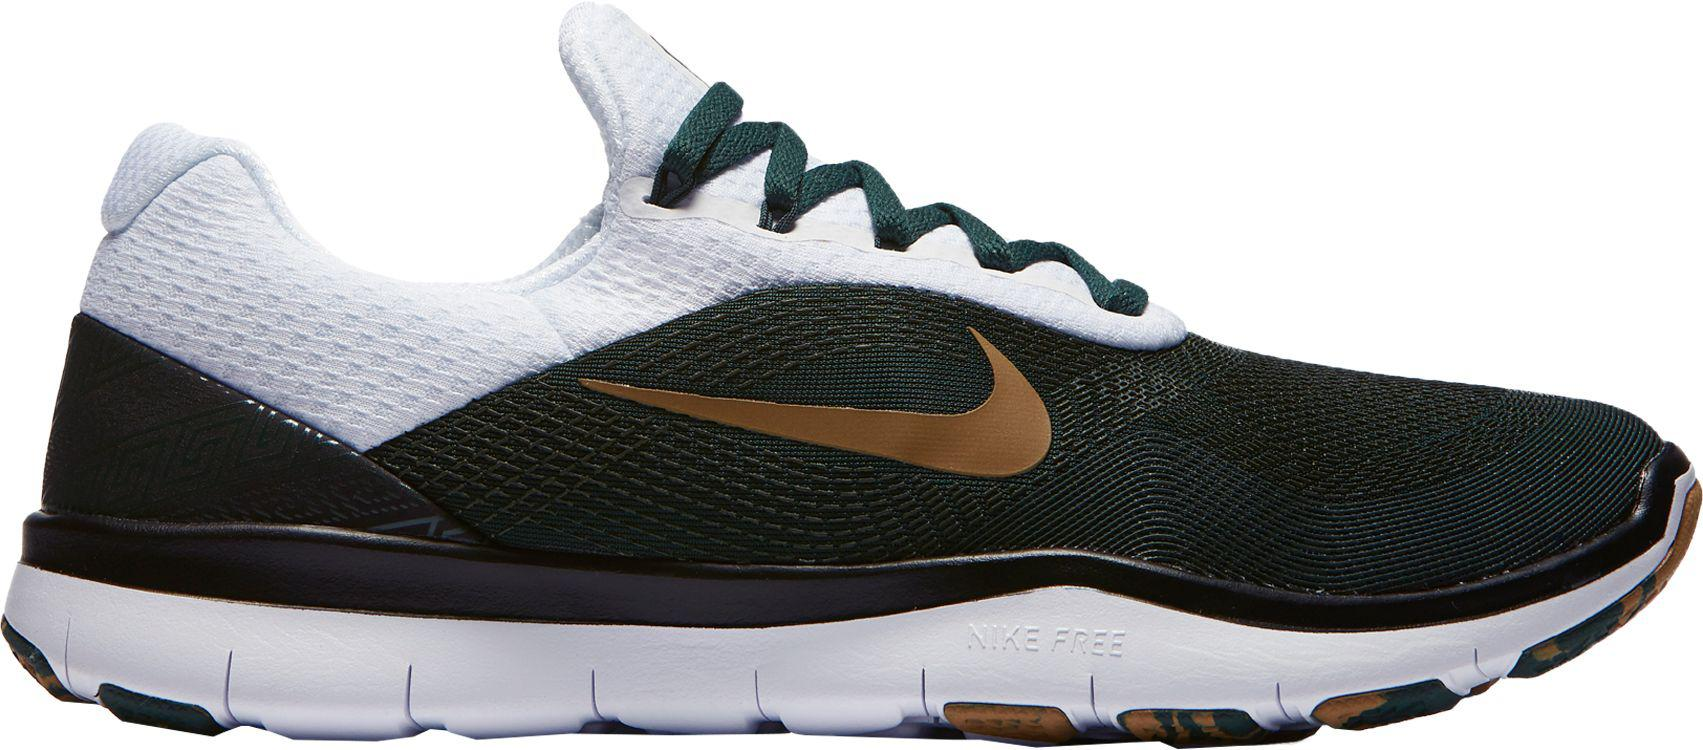 a58d732f5d Nike - Multicolor Free Trainer V7 Week Zero Michigan State Edition Training  Shoes for Men -